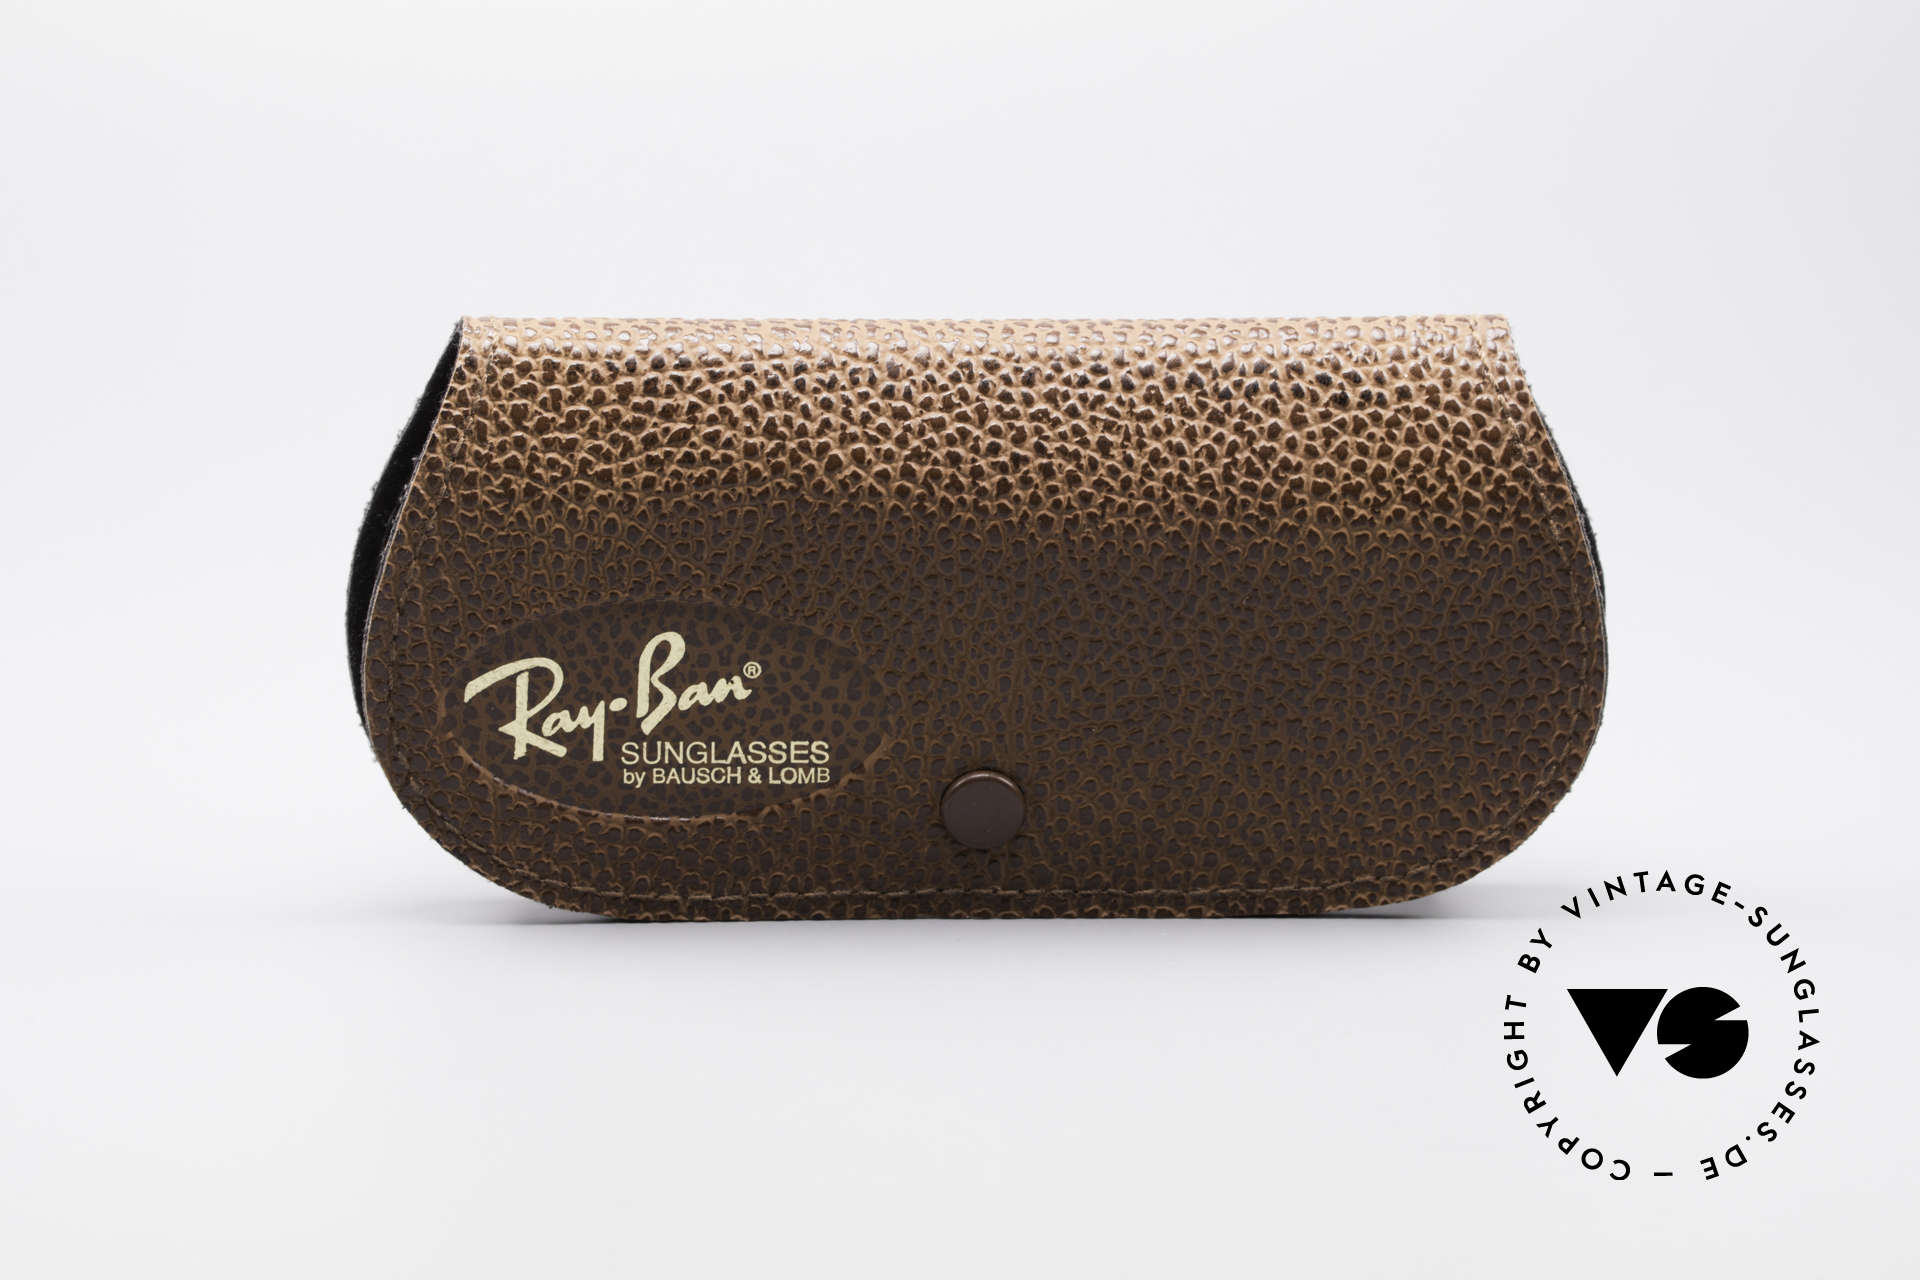 Ray Ban Clubmaster Oval 80's Bausch & Lomb Original, Size: medium, Made for Men and Women